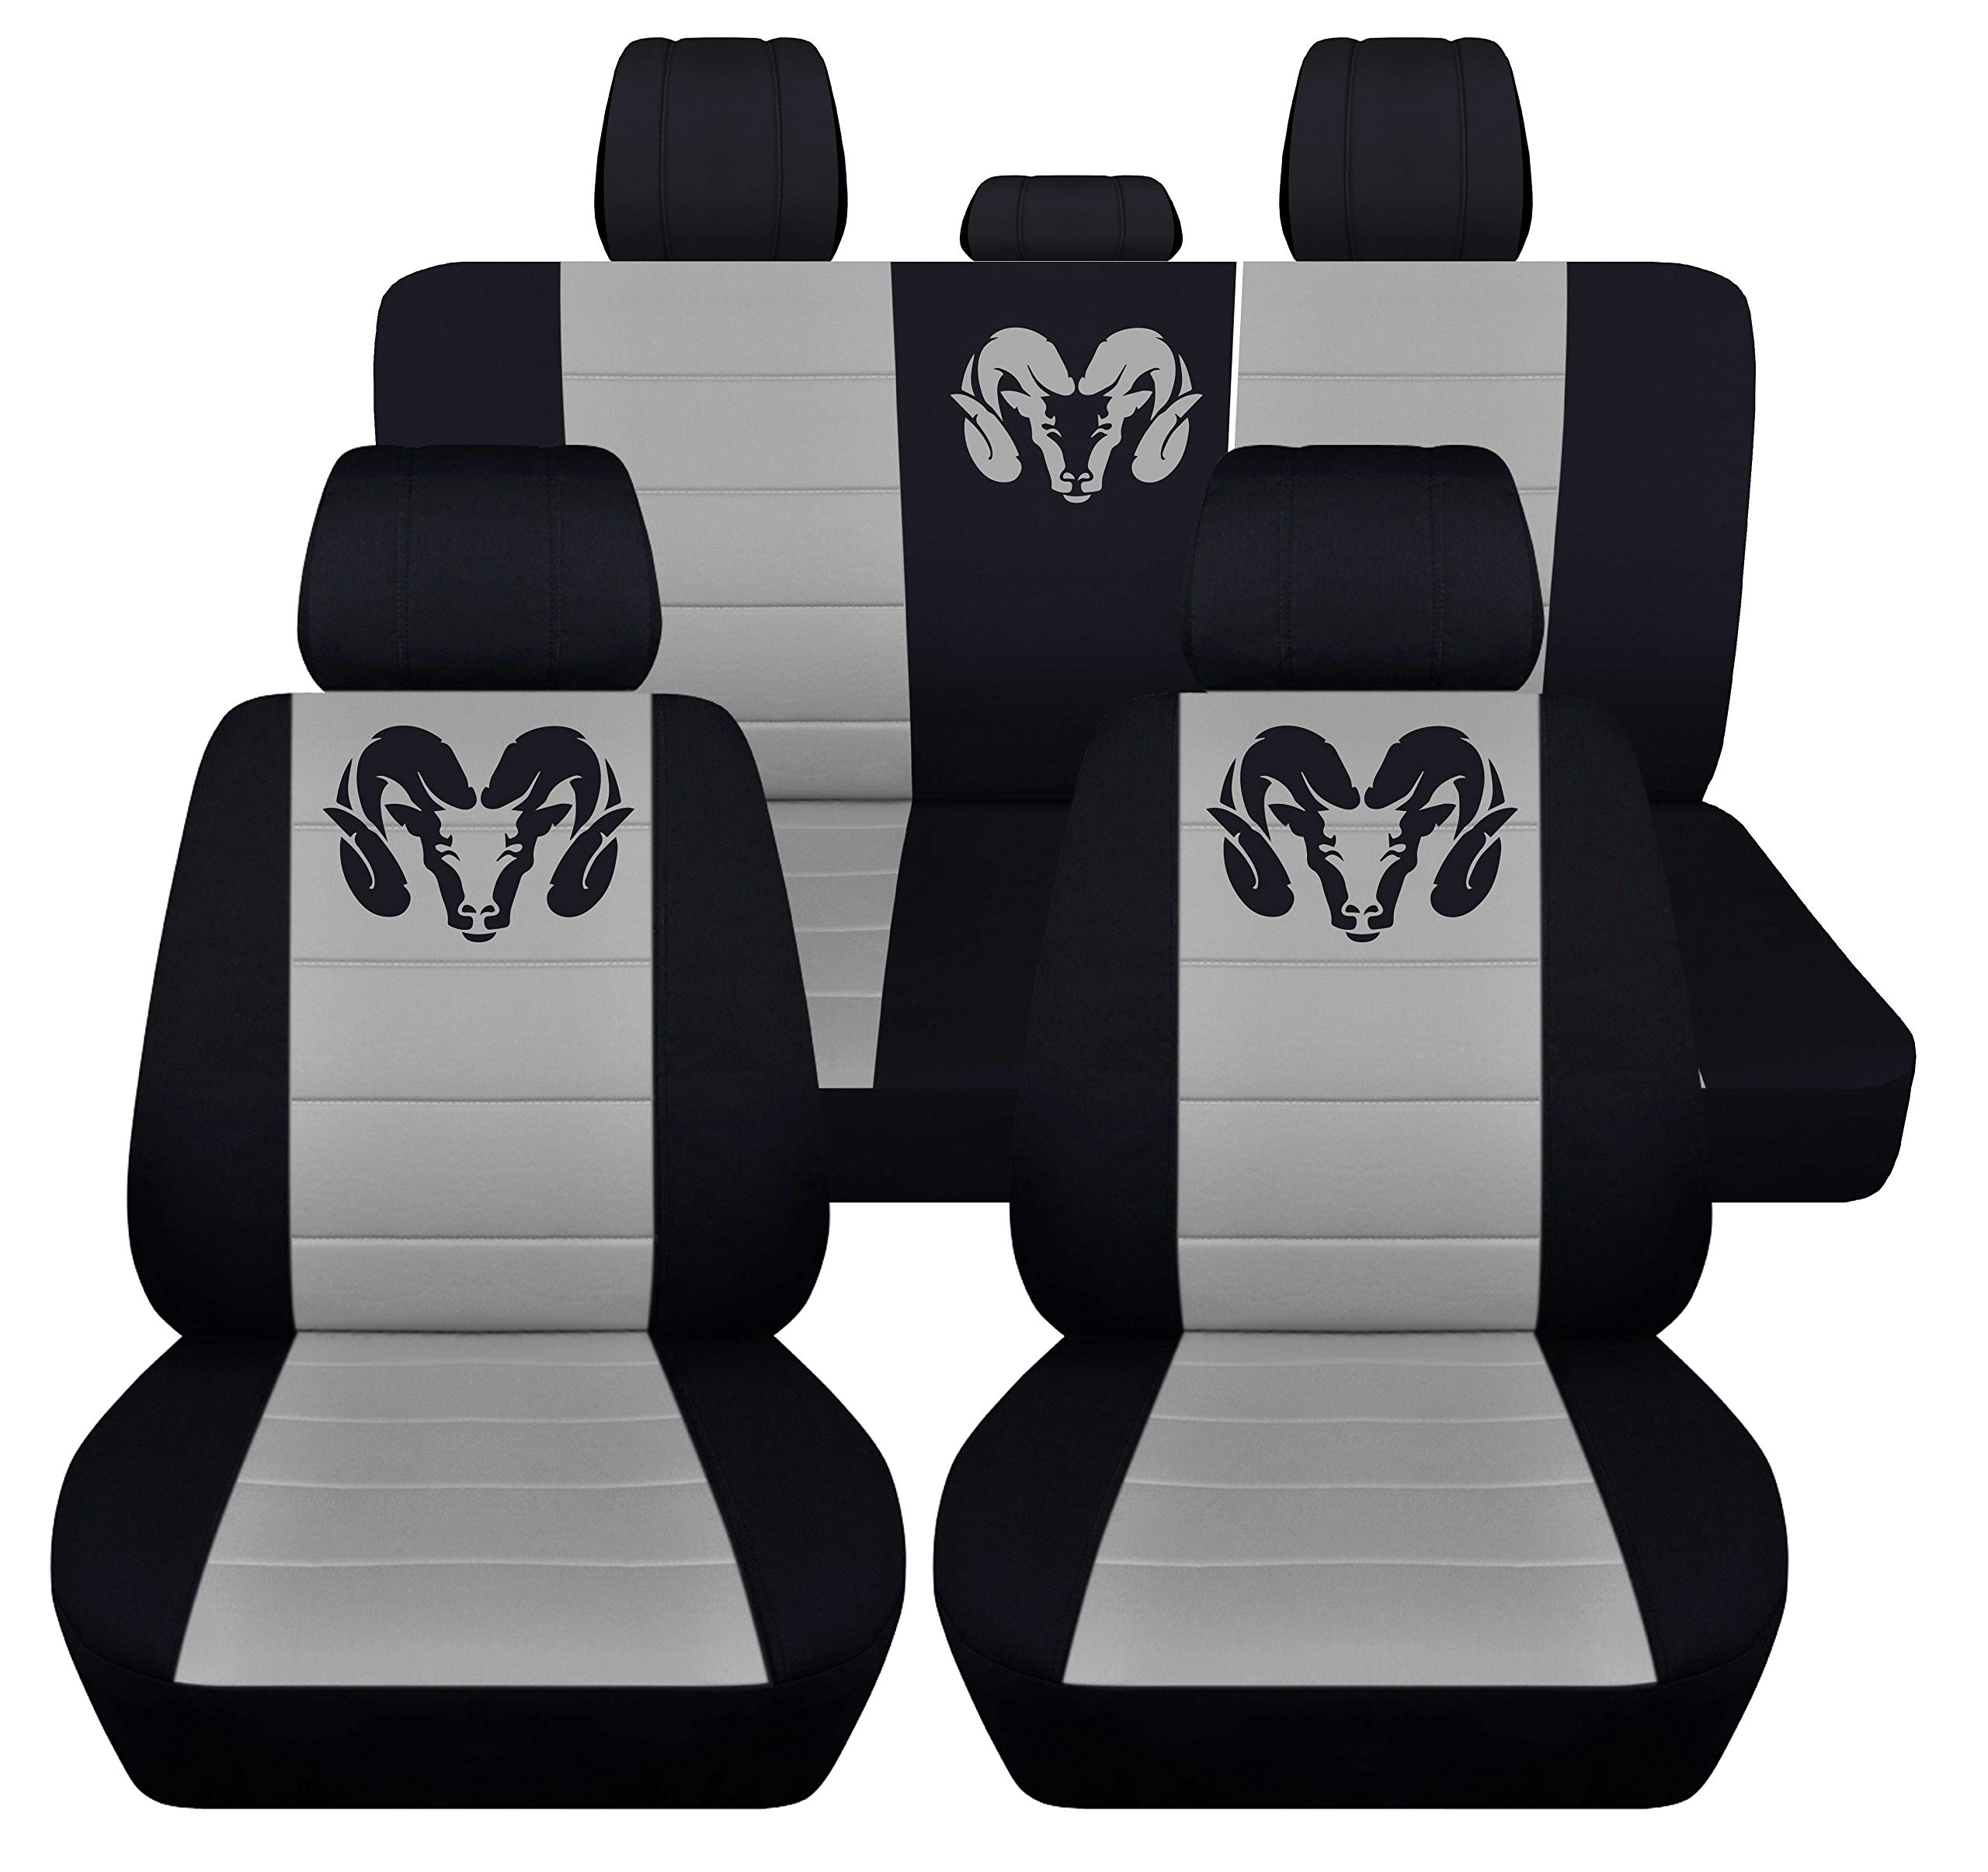 Fits 2012 to 2018 Dodge Ram Front and Rear Ram Seat Covers 22 Color Options (40-60 Rear, Black Silver) by Designcovers